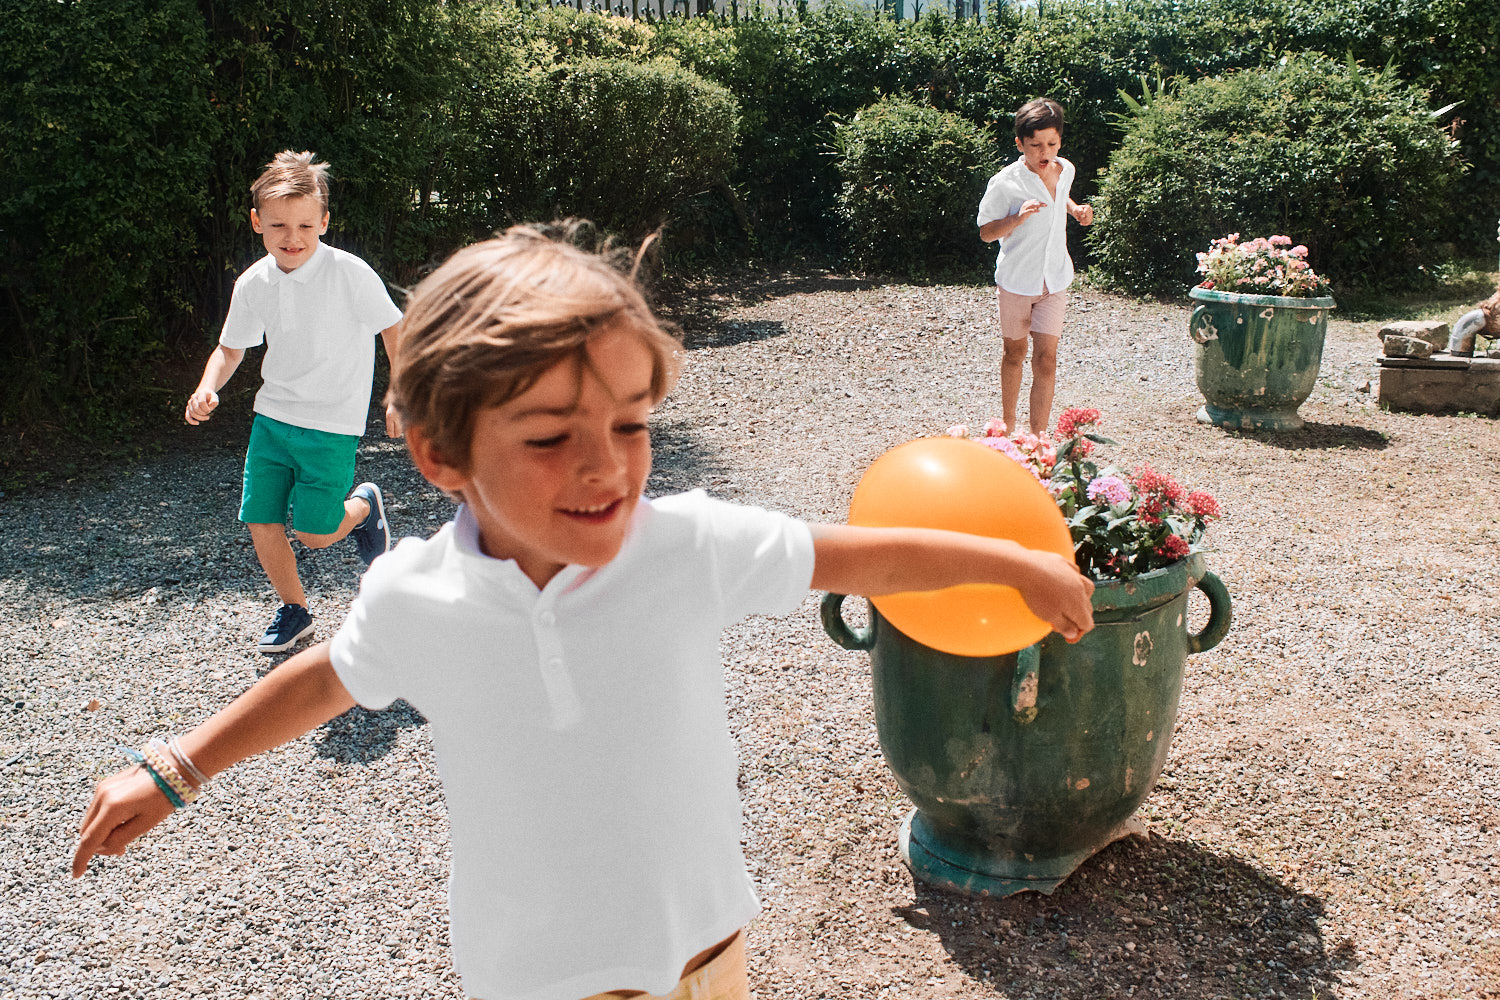 Three French children in white t-shirts play outside with orange balloon